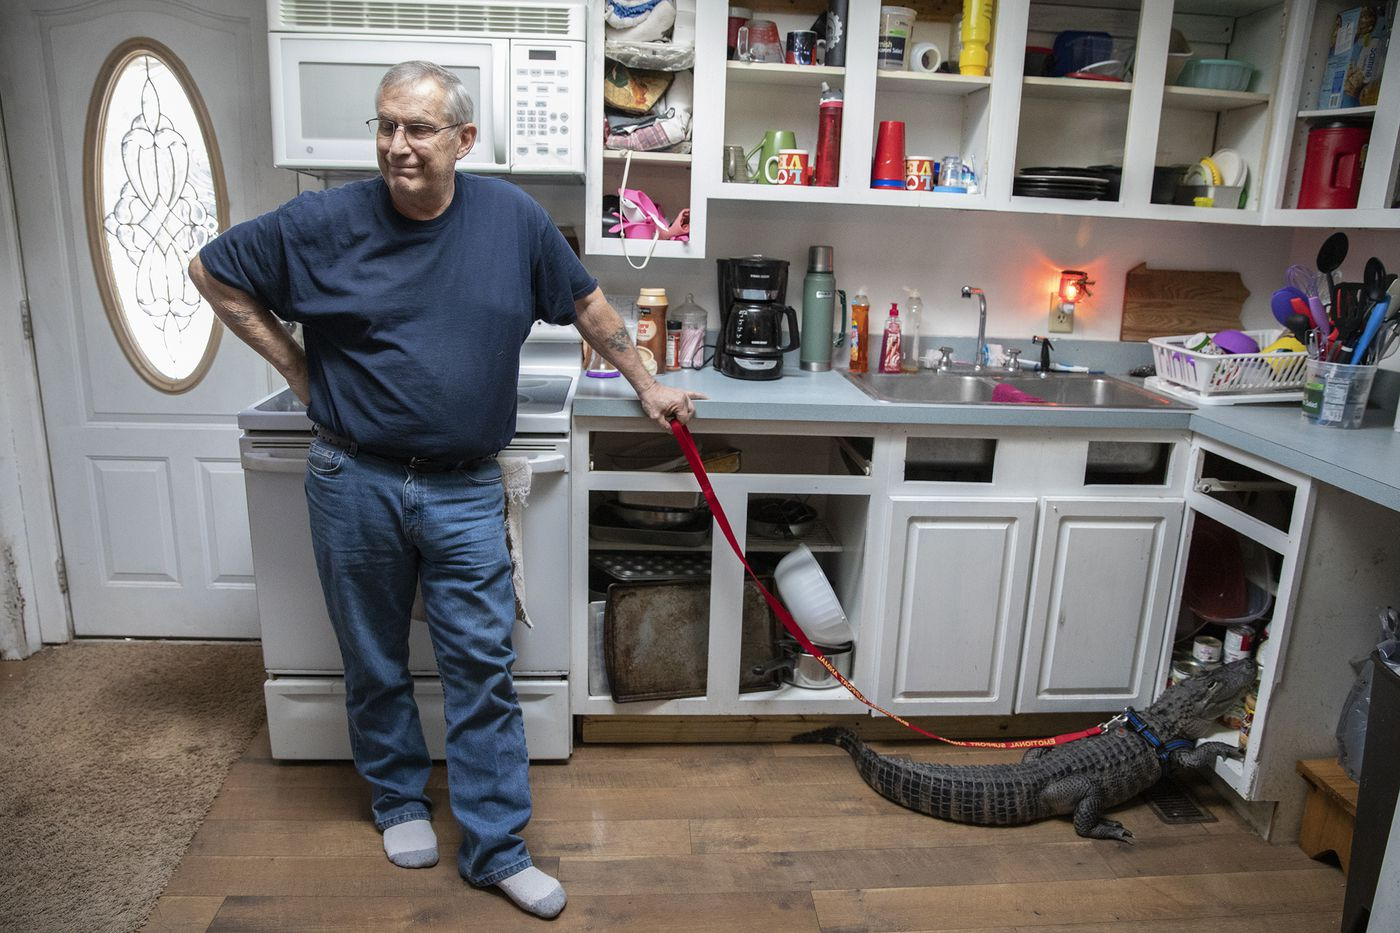 Joie Henney's emotional support alligator, Wally, rummages through the pantry inside his York County home.